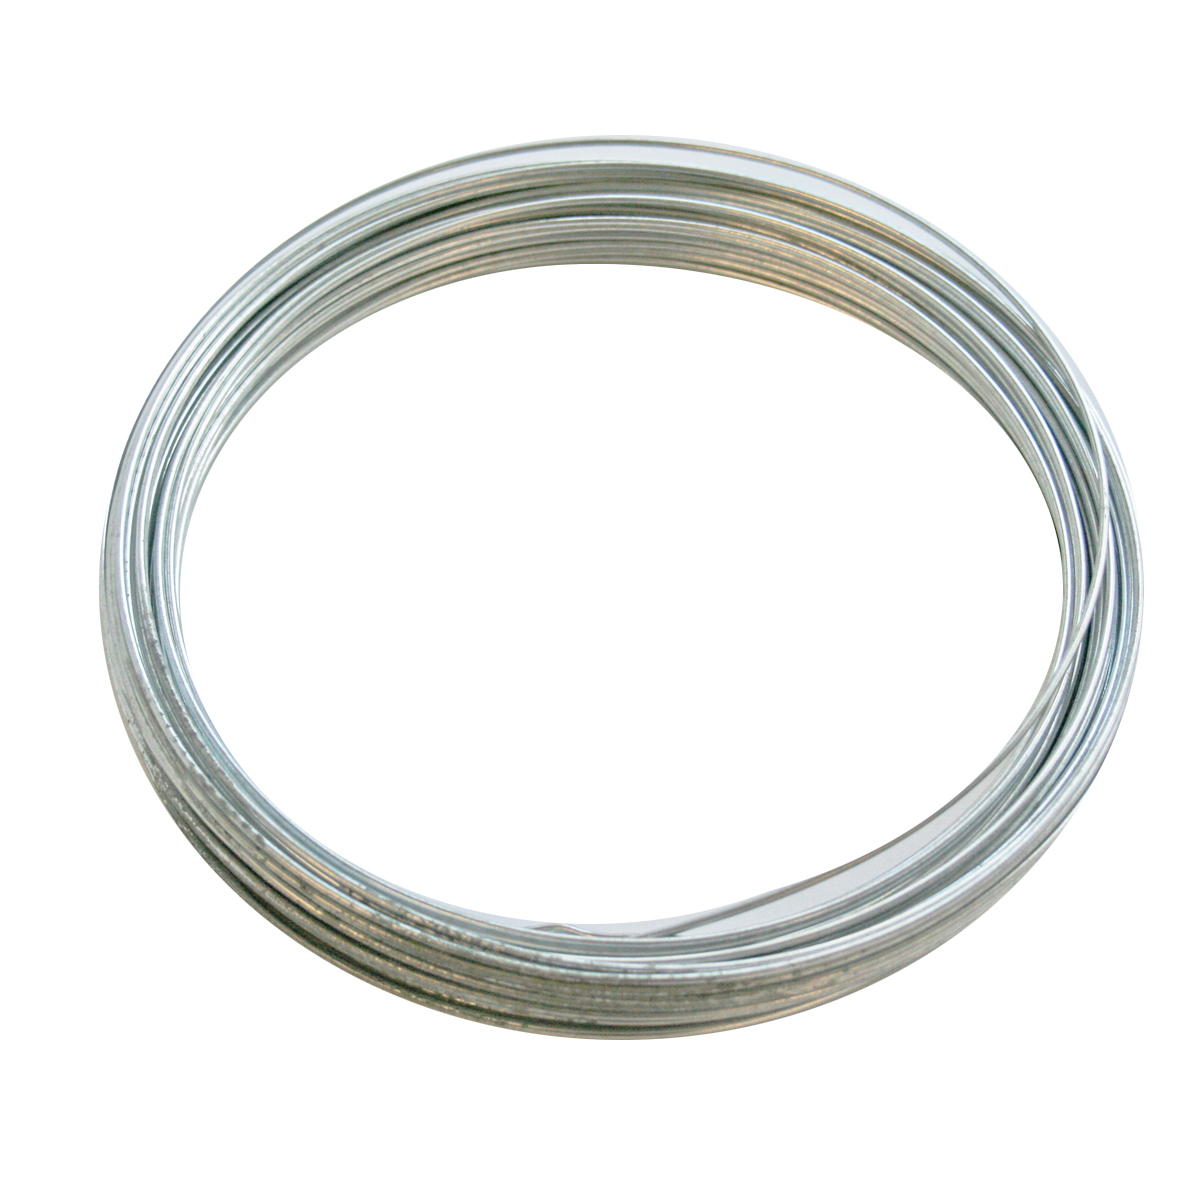 NO 16 GALVANIZED 100FT LARGE COIL WIRE